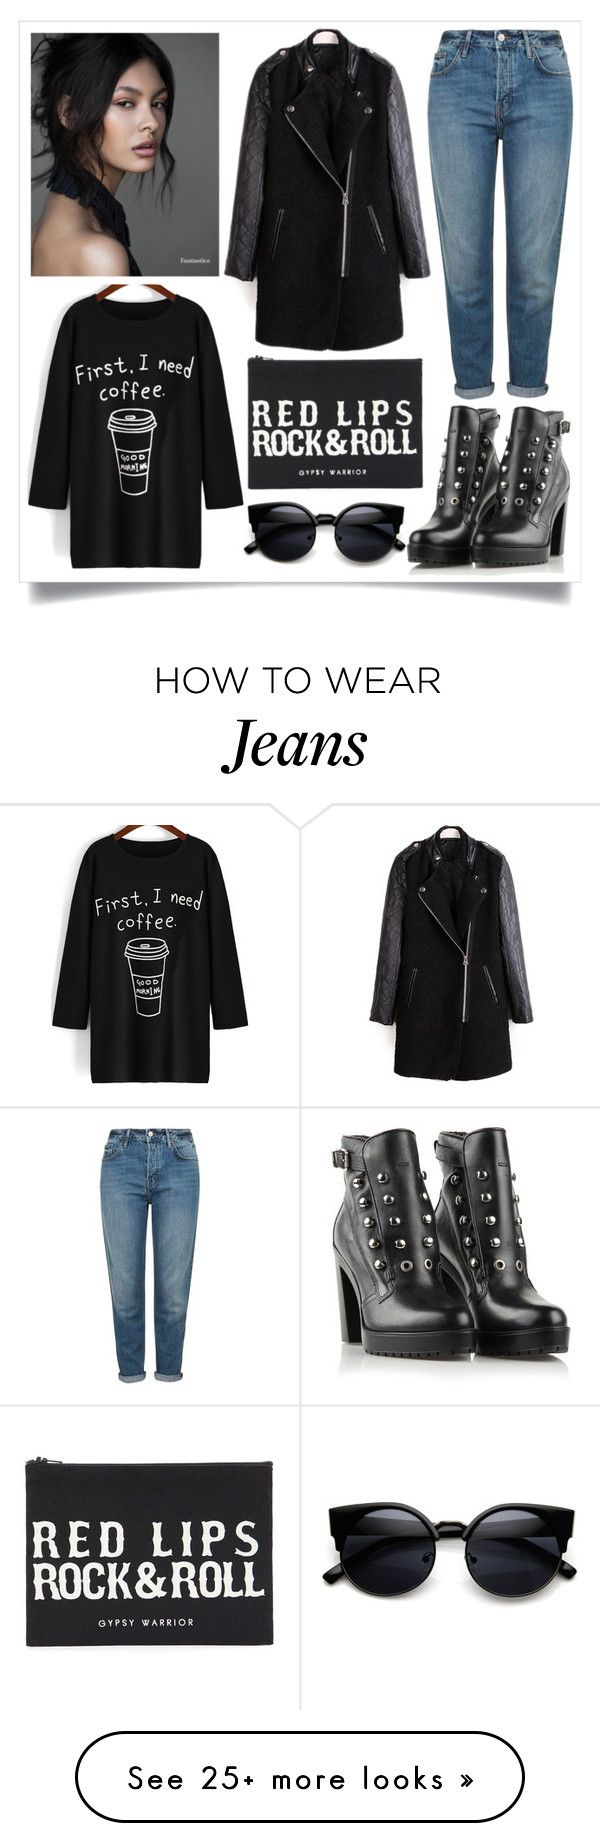 """""""Street Style"""" by madeinmalaysia on Polyvore featuring Topshop, Diesel, Forever 21, women's clothing, women's fashion, women, female, woman, misses and juniors"""